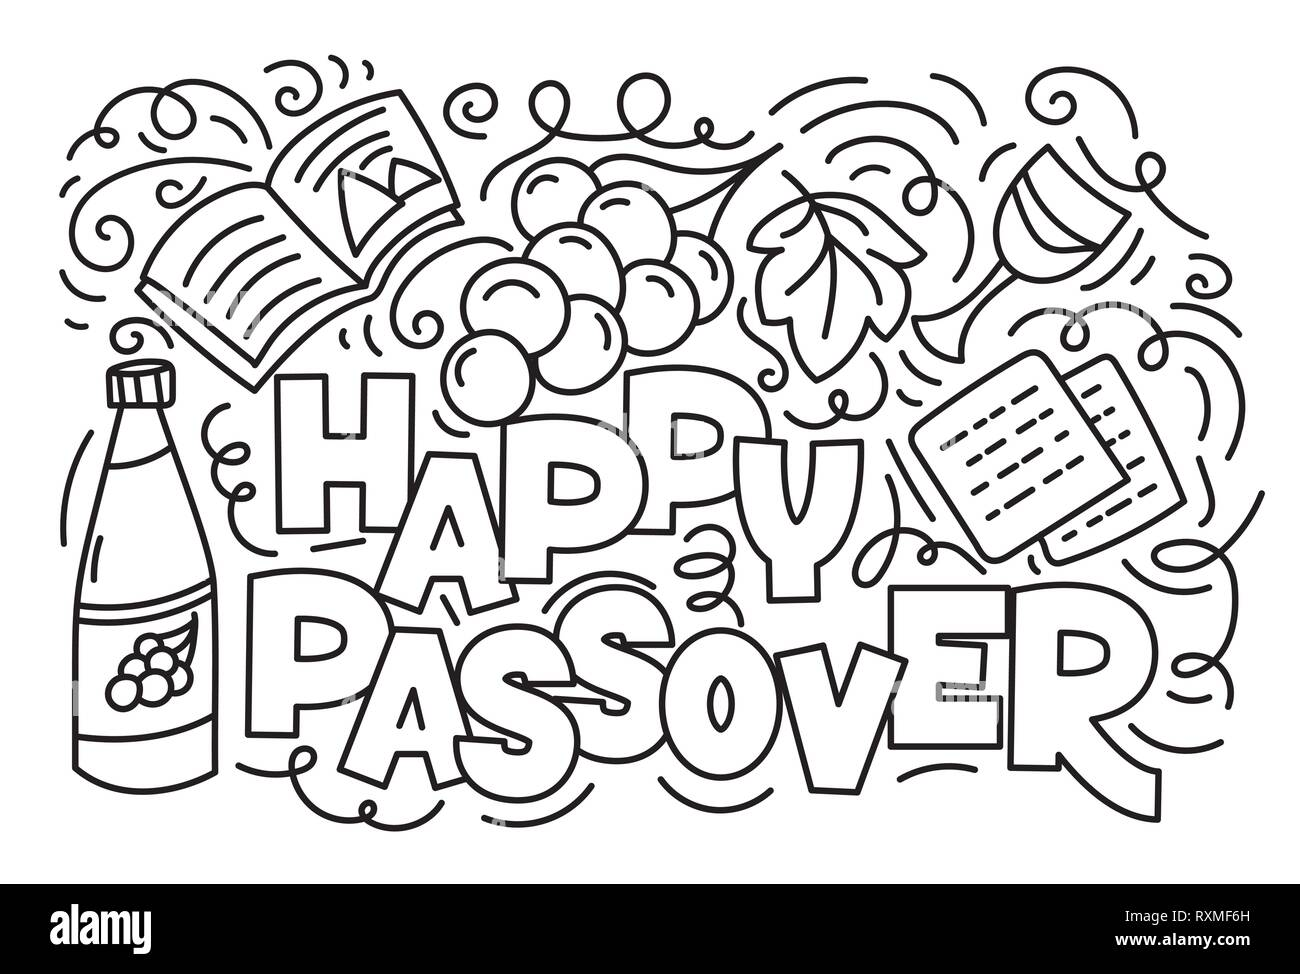 Passover Greeting Card Jewish Holiday Pesach Hebrew Text Happy Passover Black And White Vector Illustration Doodle Style Isolated On White Background Coloring Book Page Stock Vector Image Art Alamy